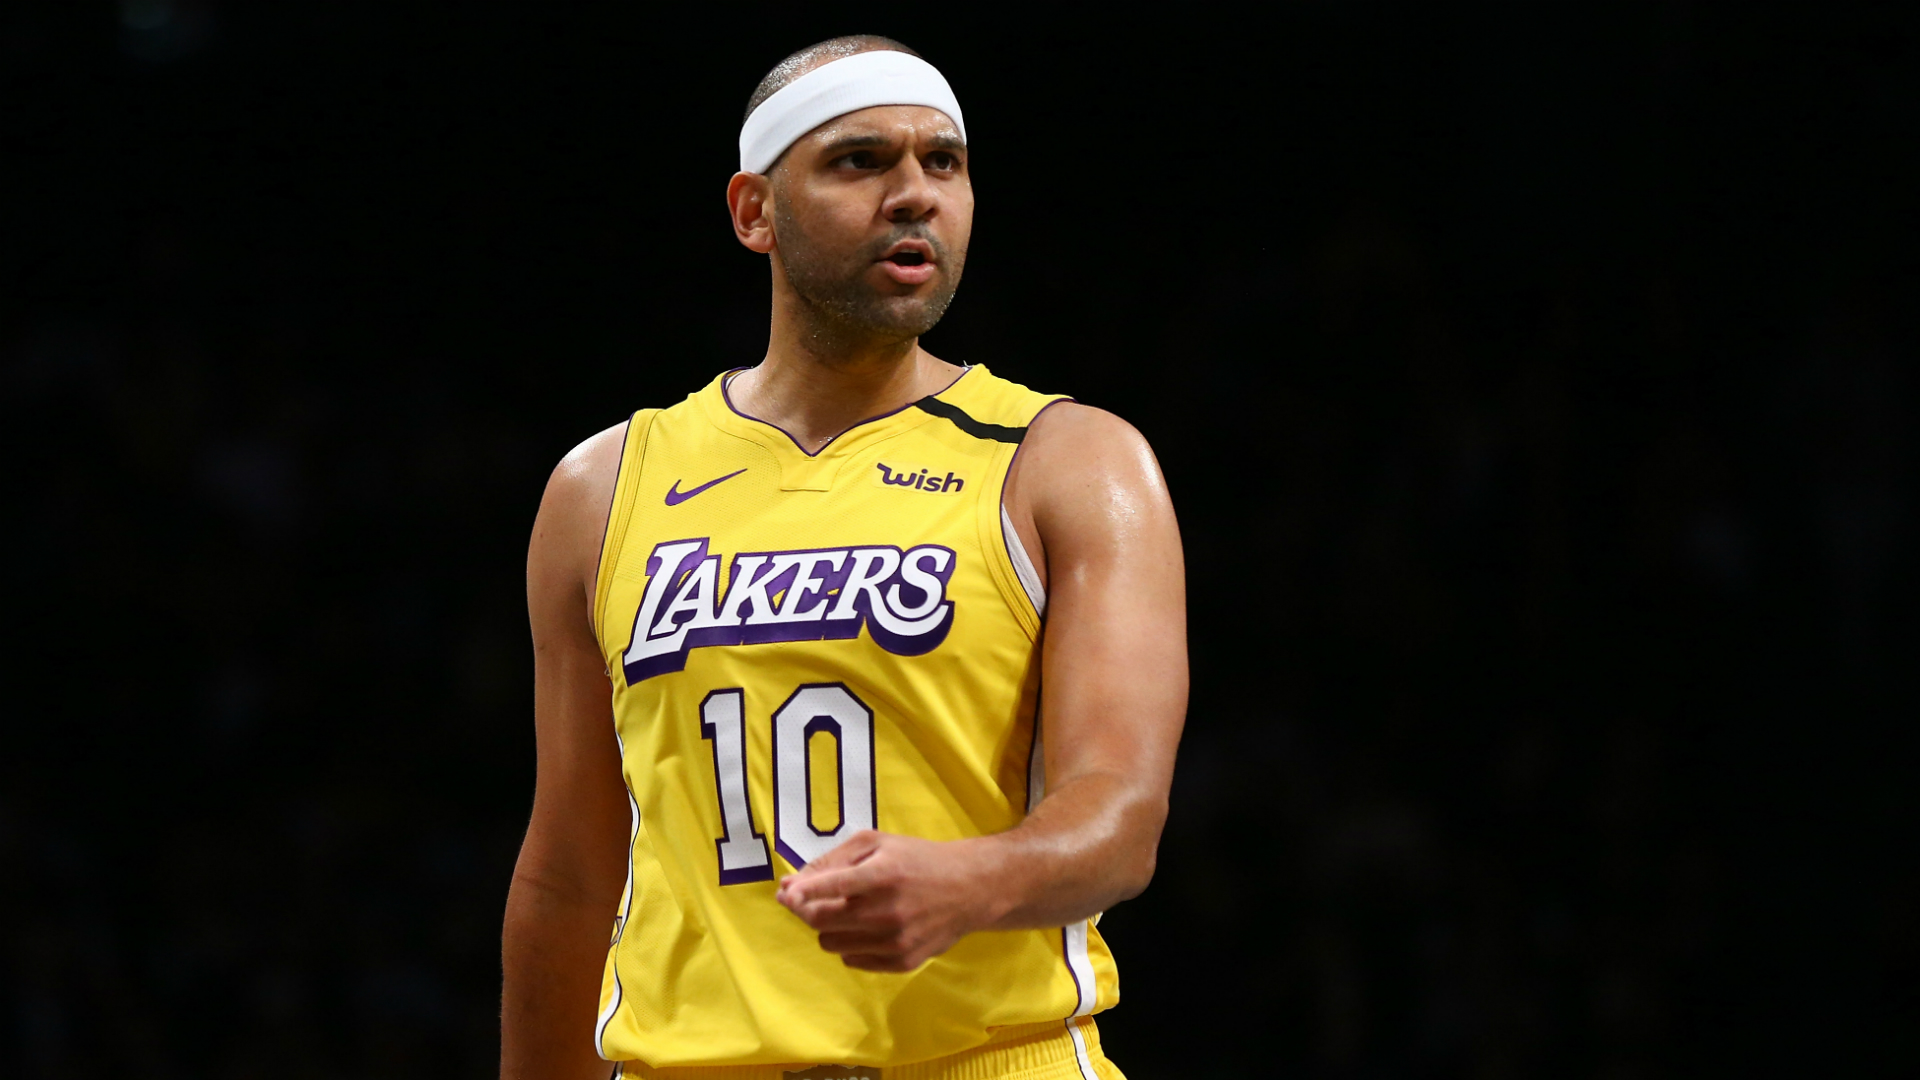 Lakers' Jared Dudley claims NBA playoffs could go as late as October 1